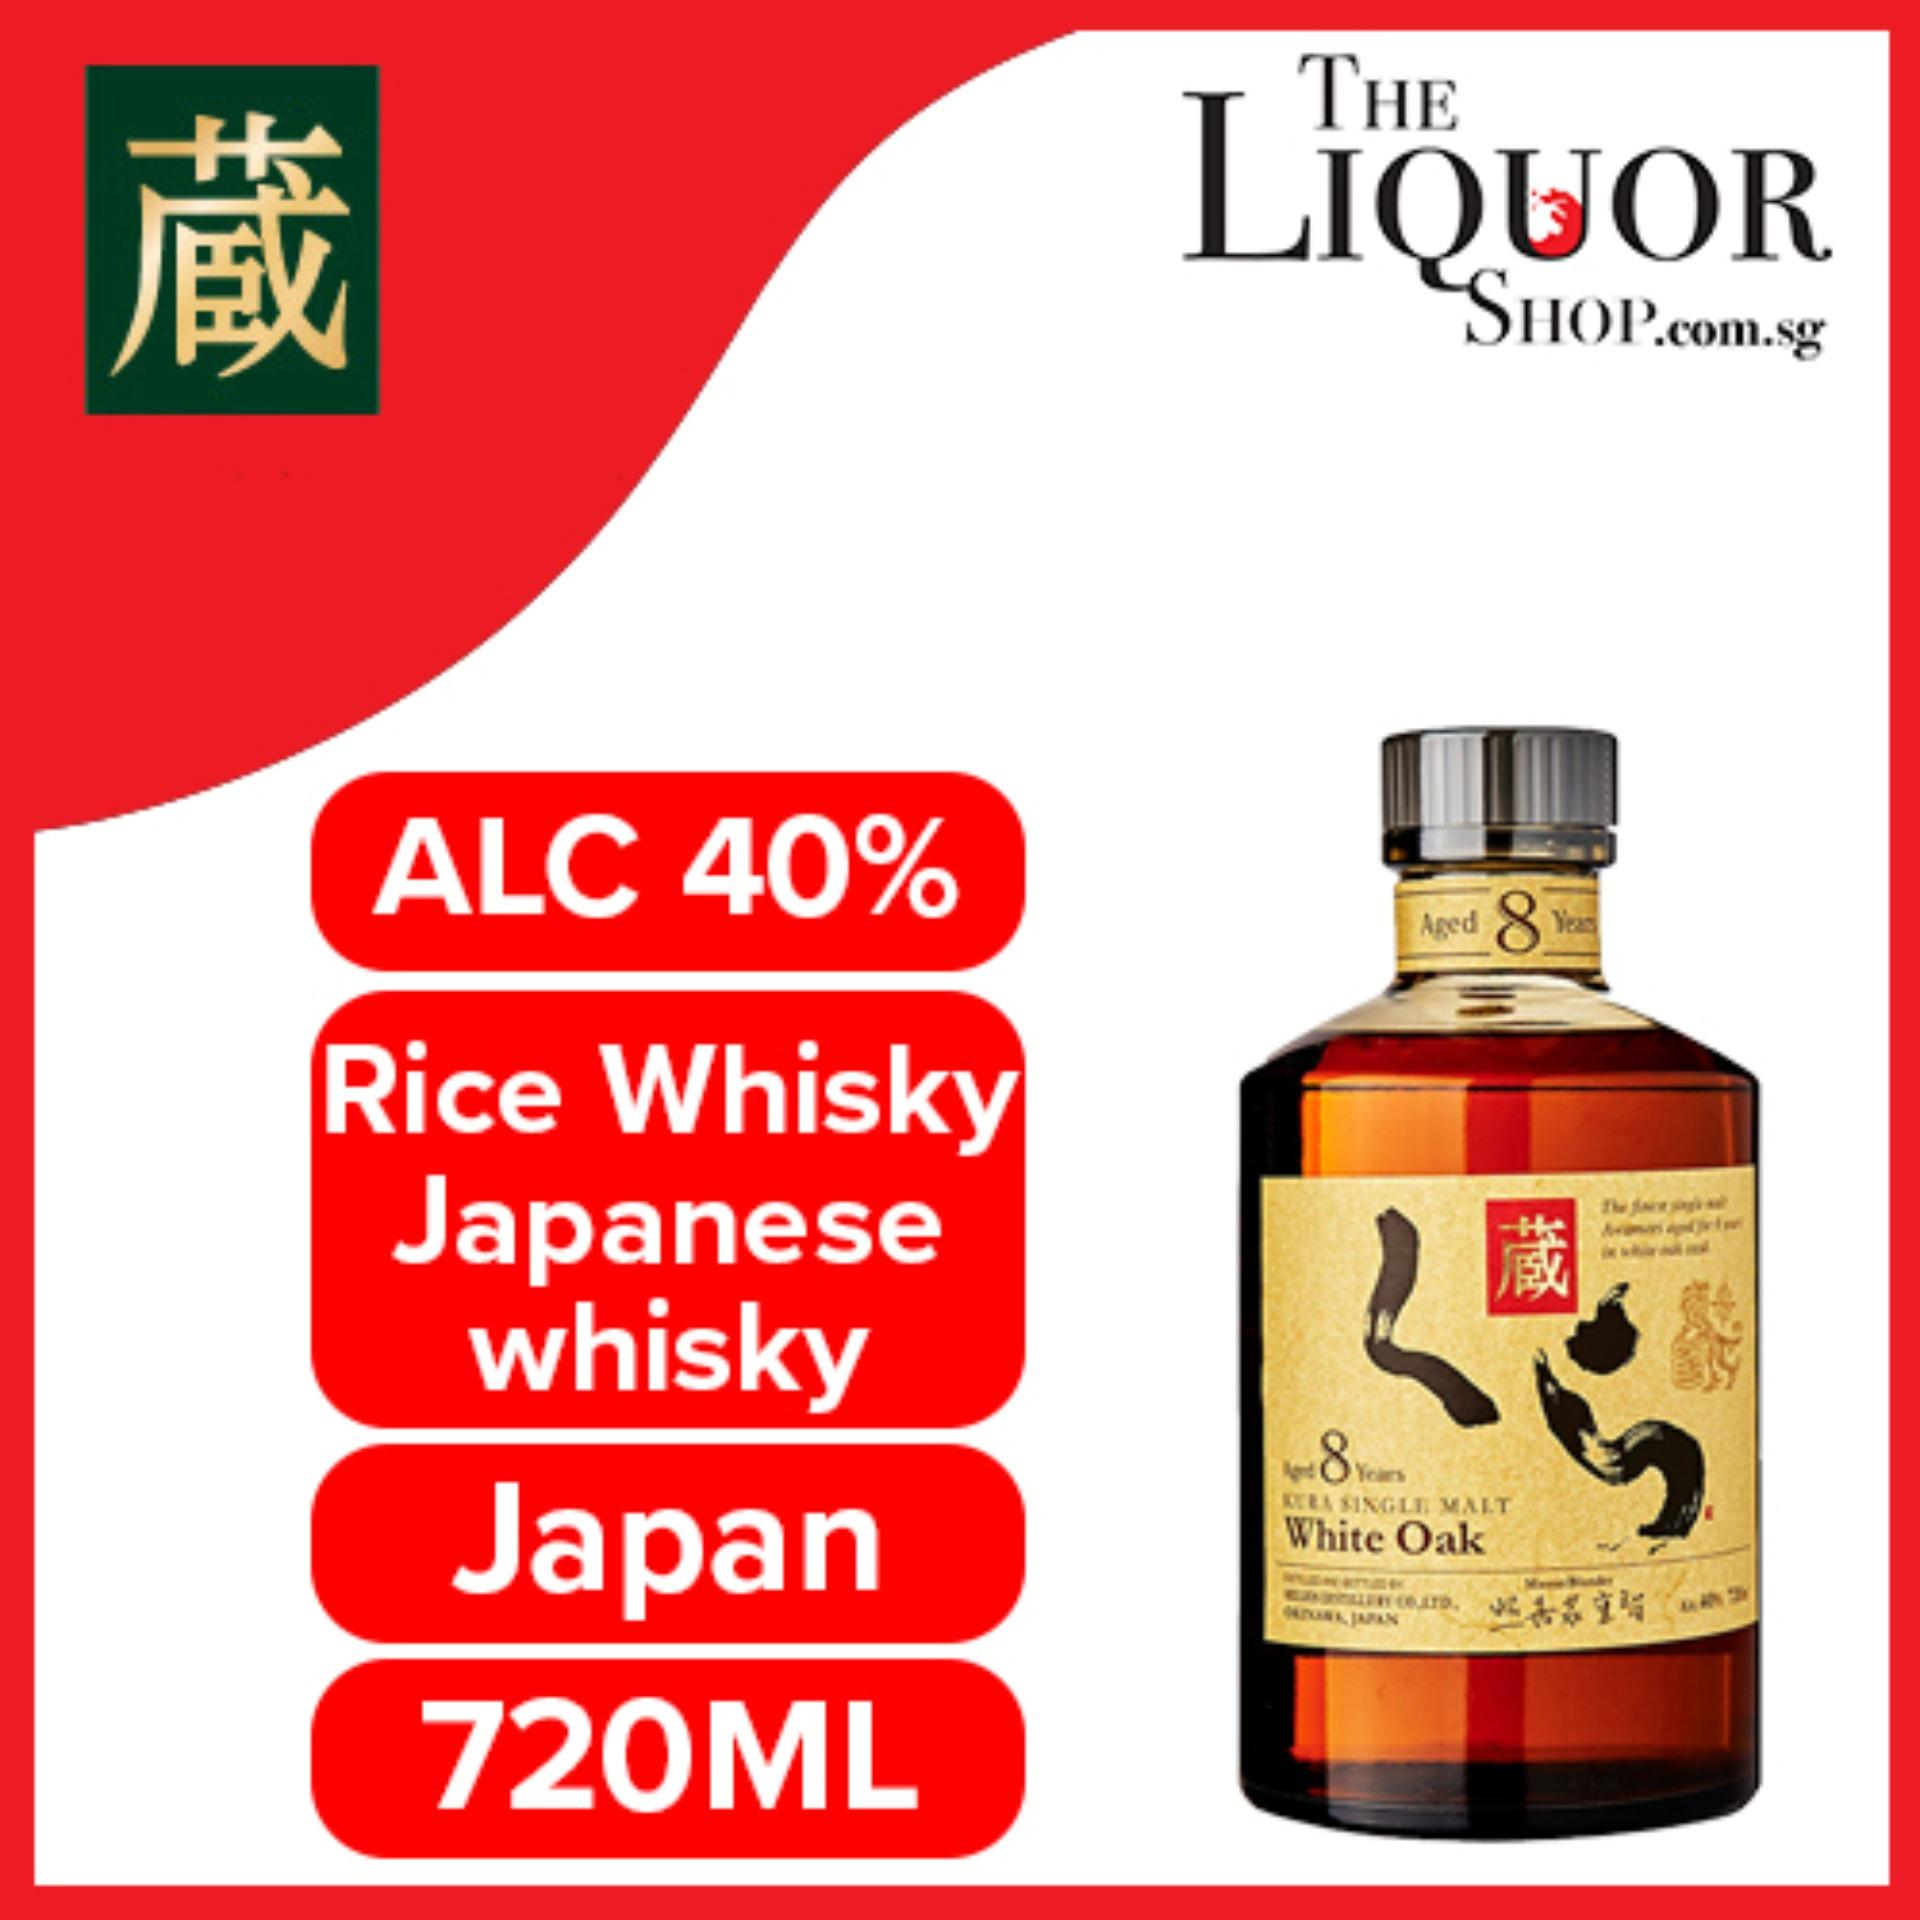 Kura 8 Years Old Awamori Rice Whisky 720ml By The Liquor Shop.